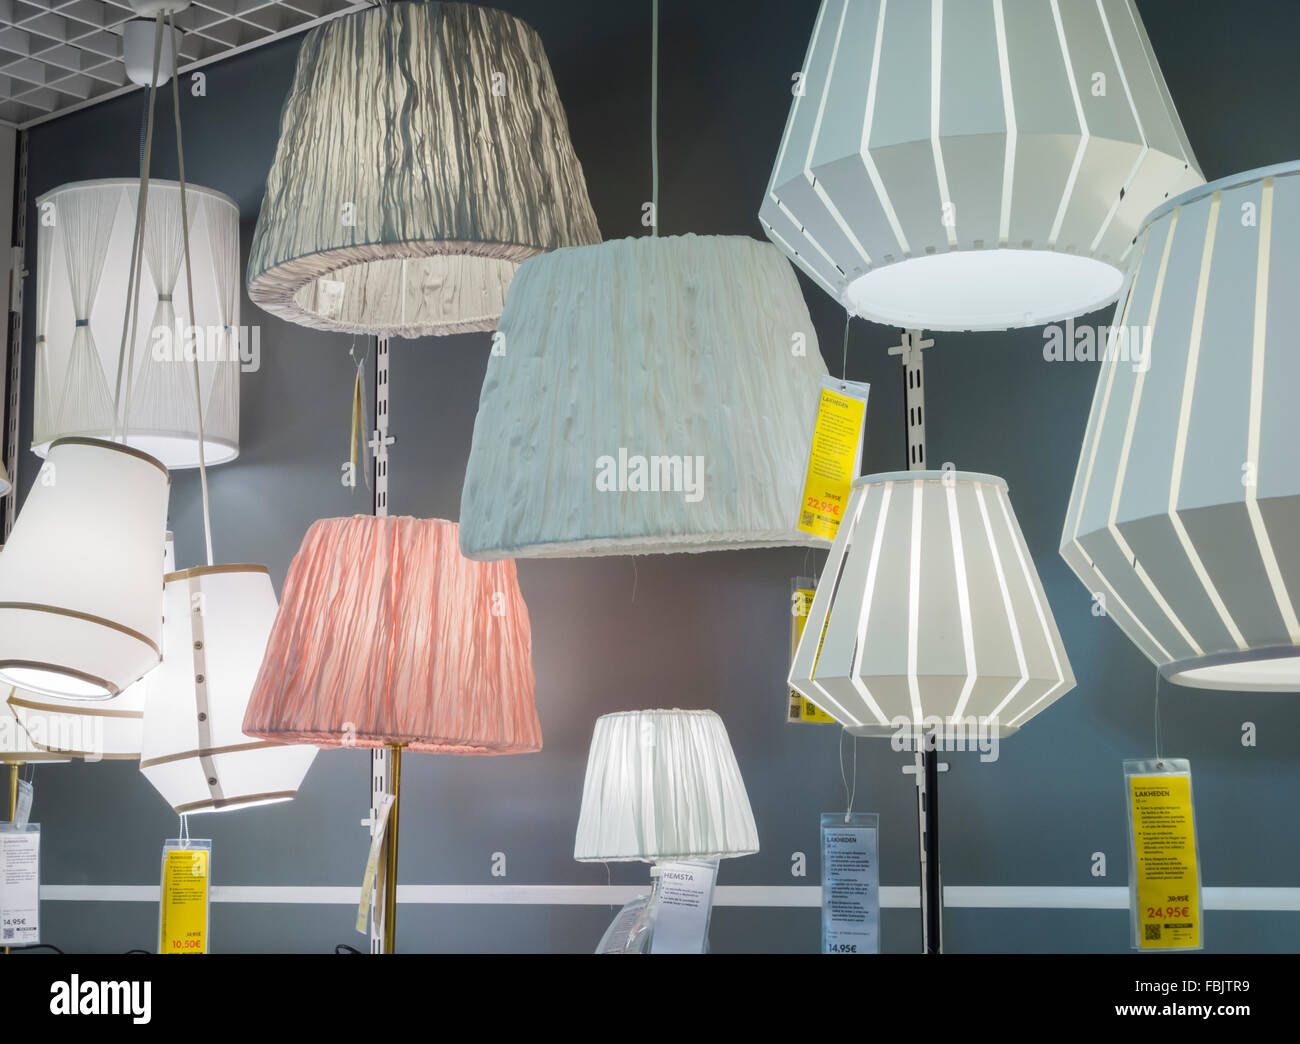 lighting at ikea. Lighting Display In Ikea Store, Spain At A